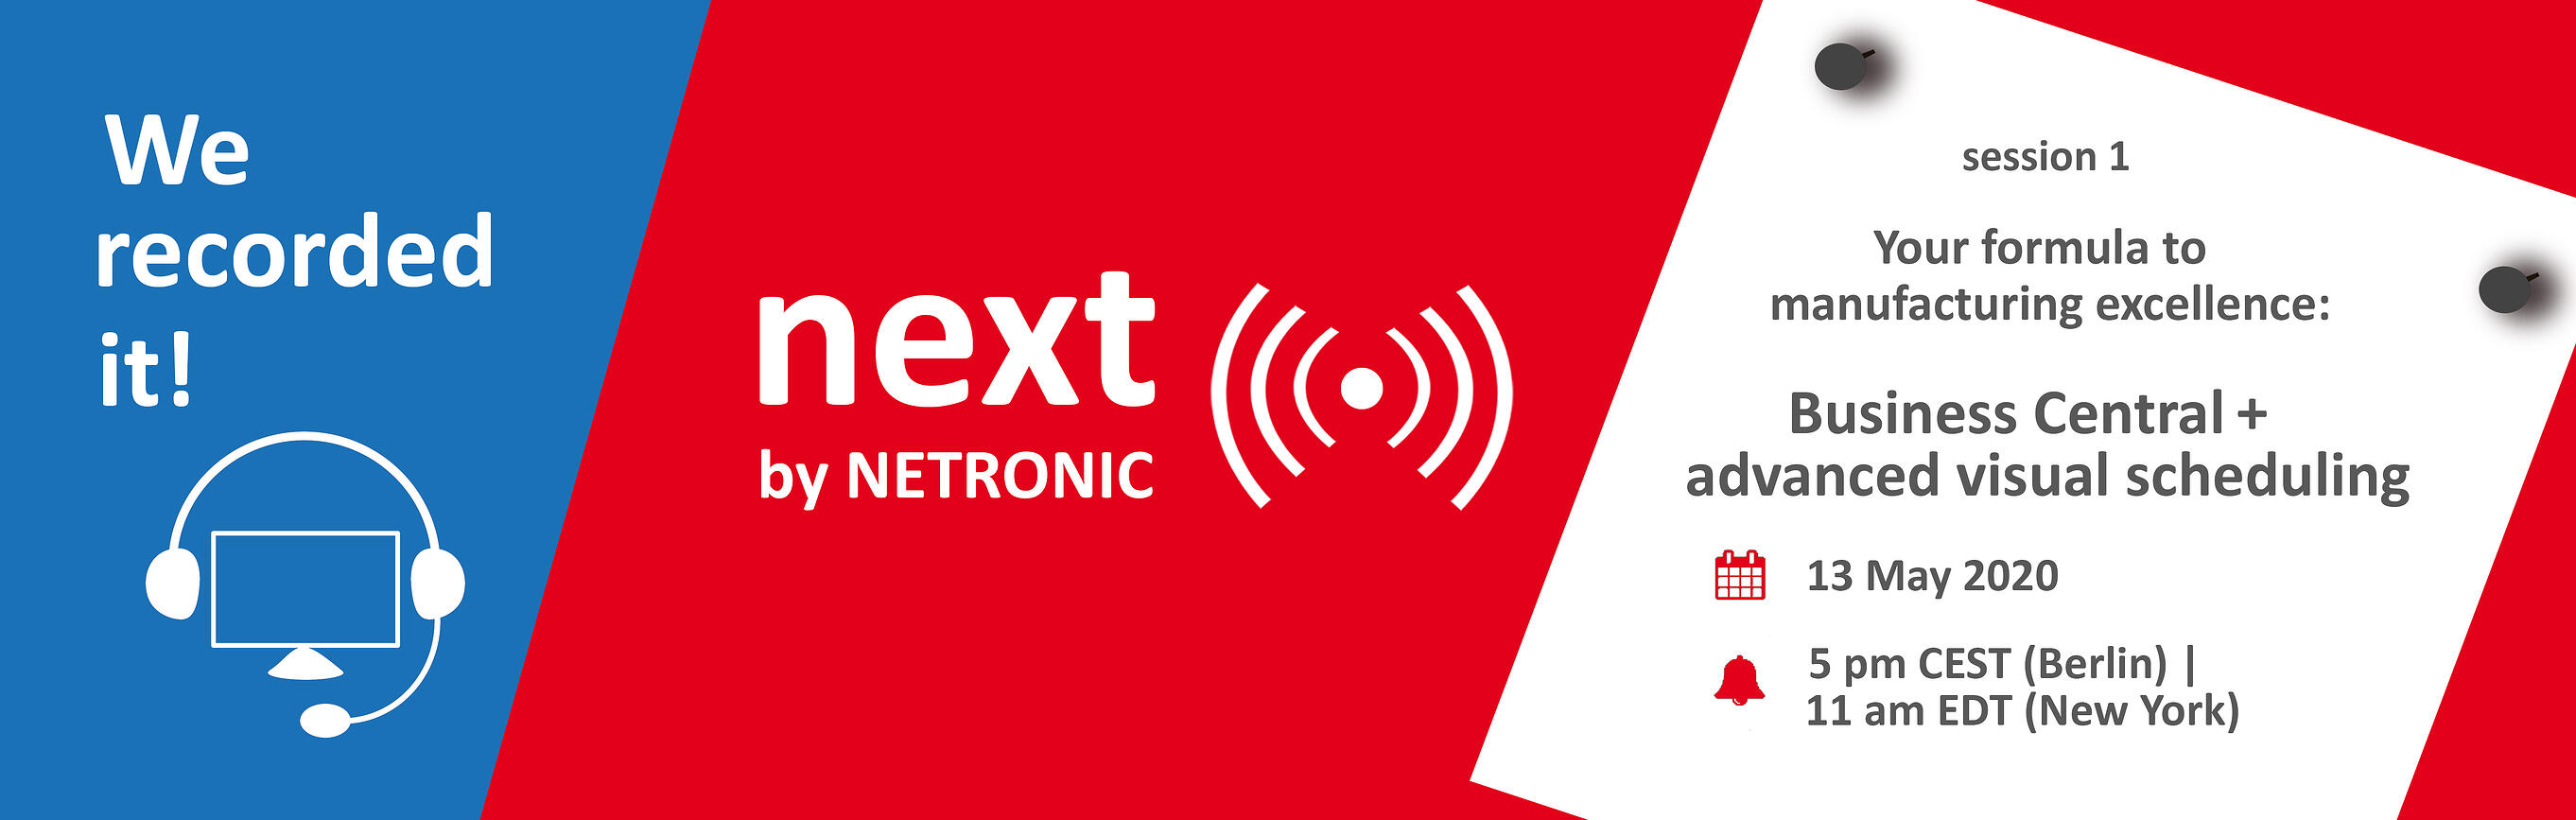 next by NETRONIC - recorded live event